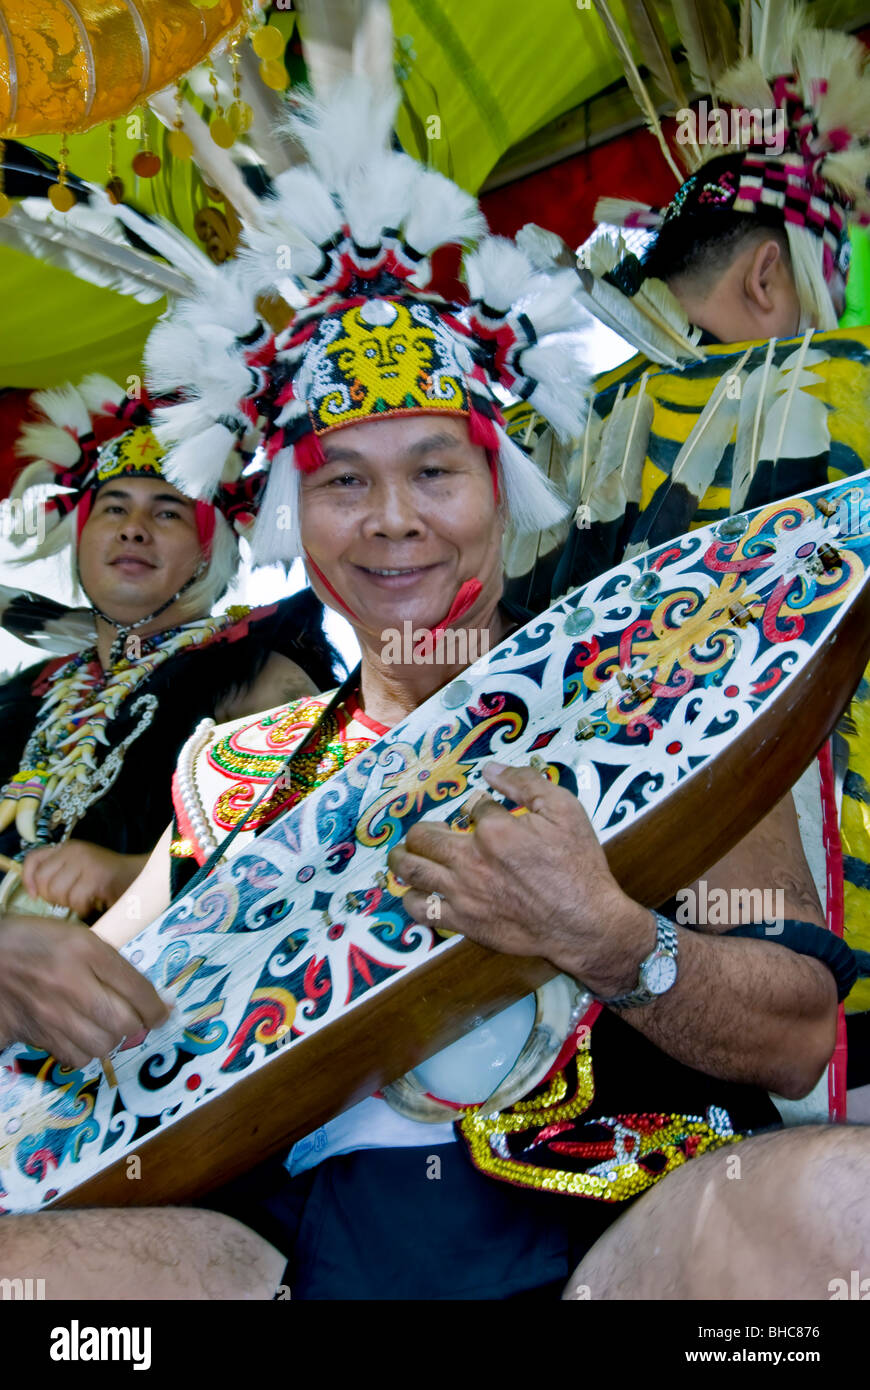 Paris, France, Public Events, Tropical Carnival Parade, Colorful Participants, Indonesian Traditional Musicians - Stock Image